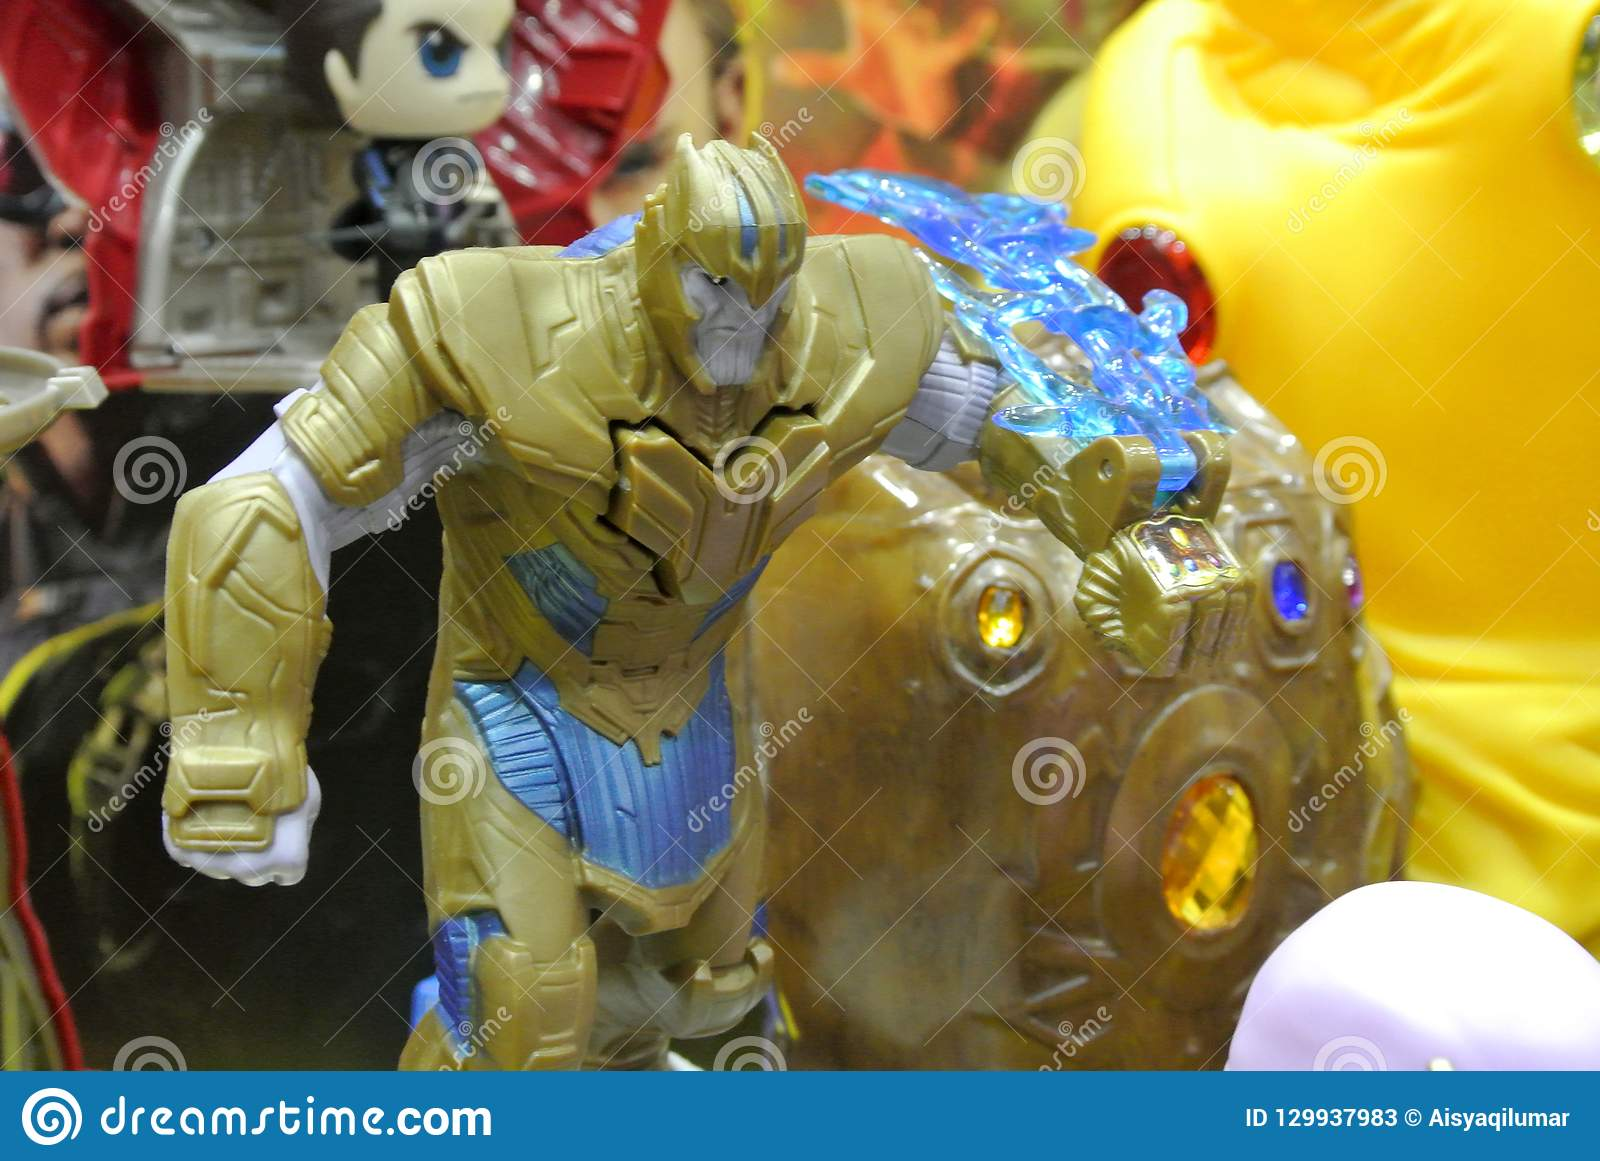 Thanos Supervillain Character Action Figure From Marvel